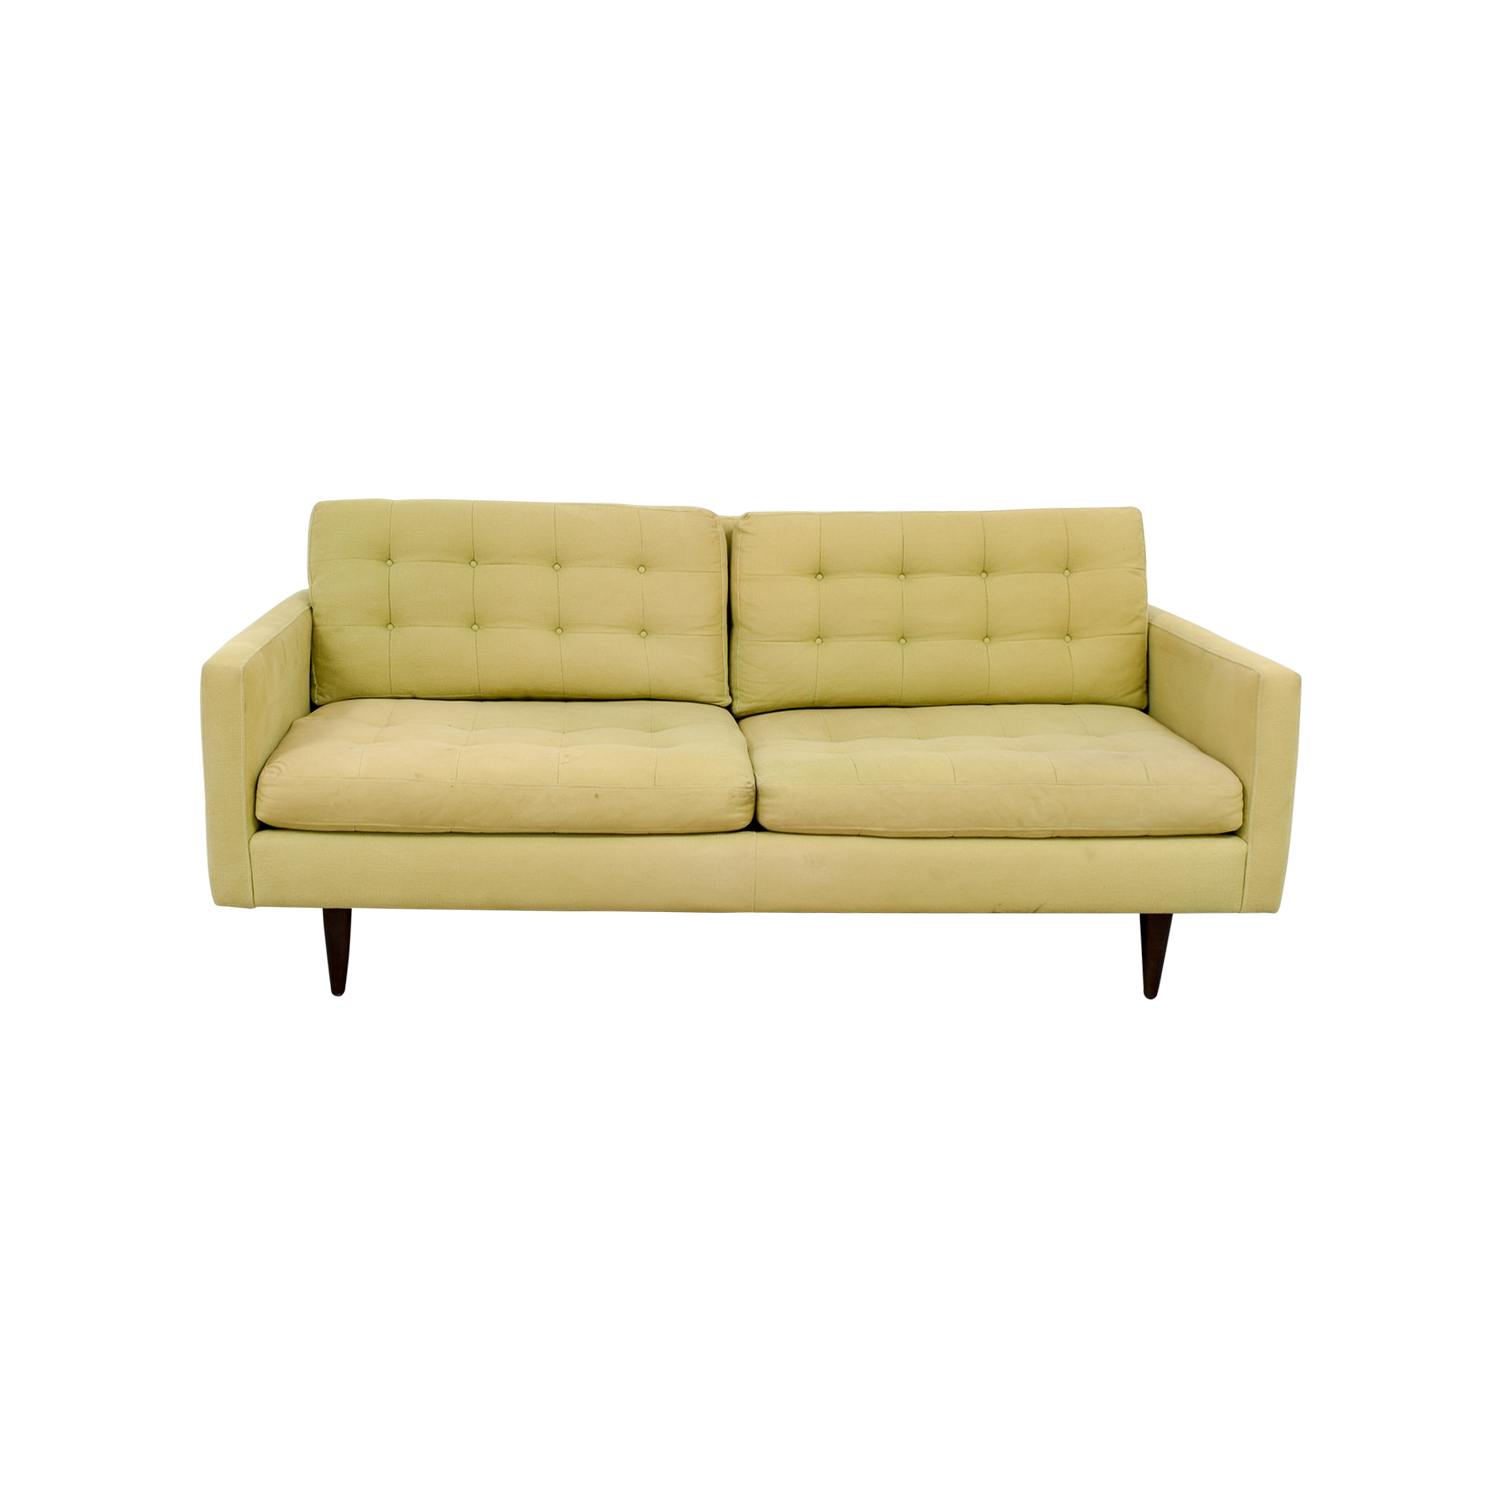 crate and barrel shelter sofa dimensions modern bed nz second hand classic sofas on sale